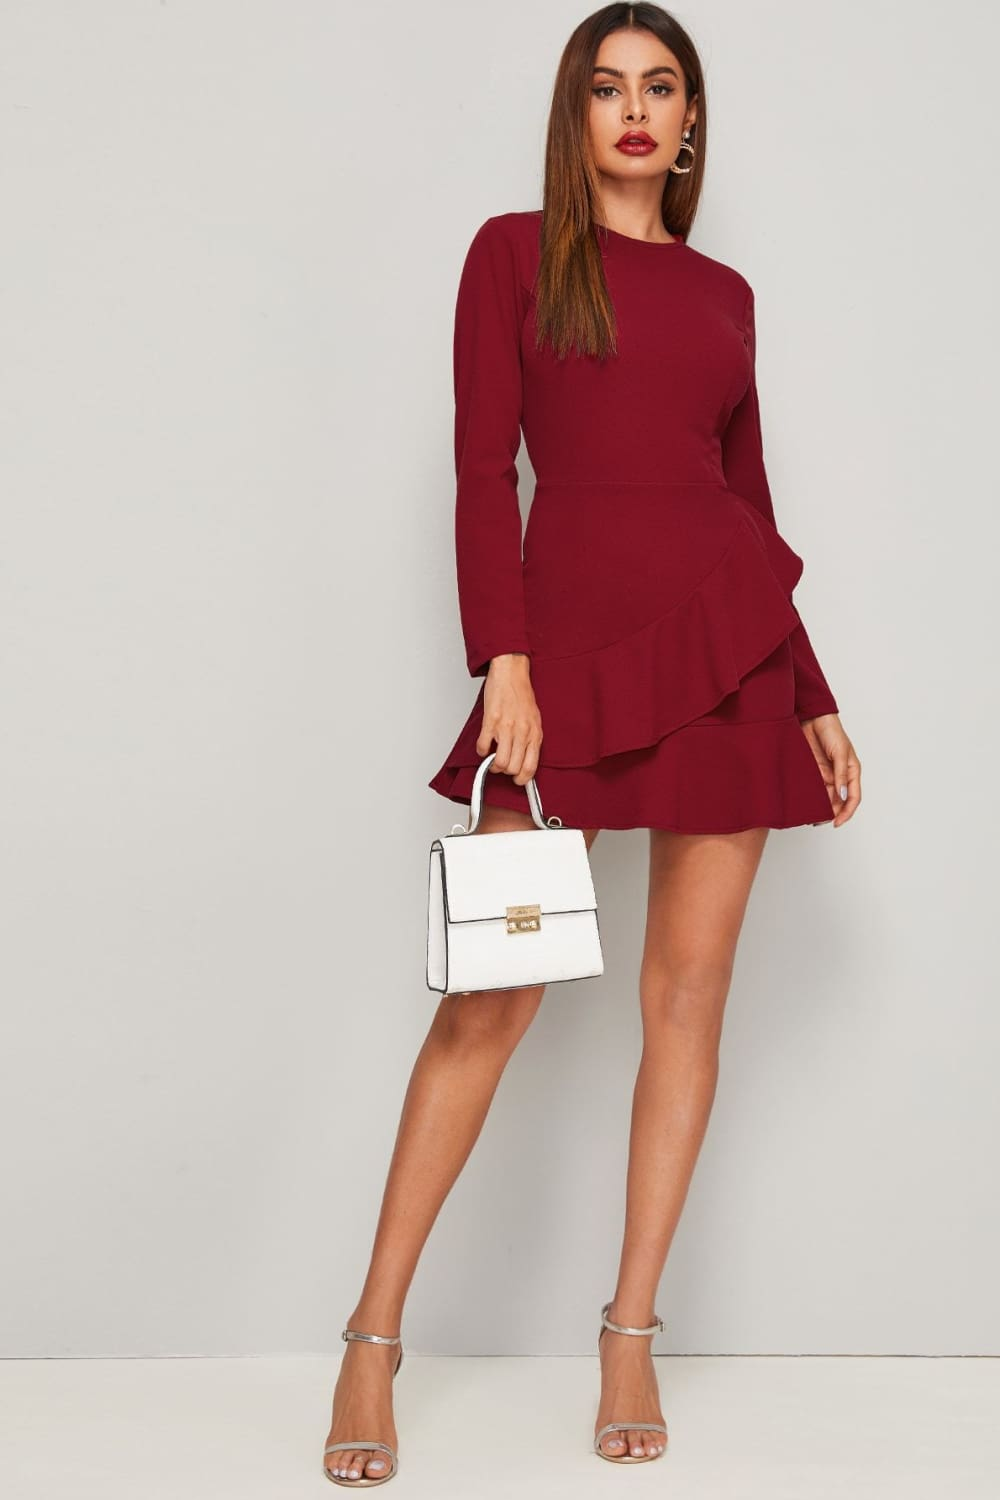 Romantic Night Long Sleeve Dress - Dresses - Evan & Jane